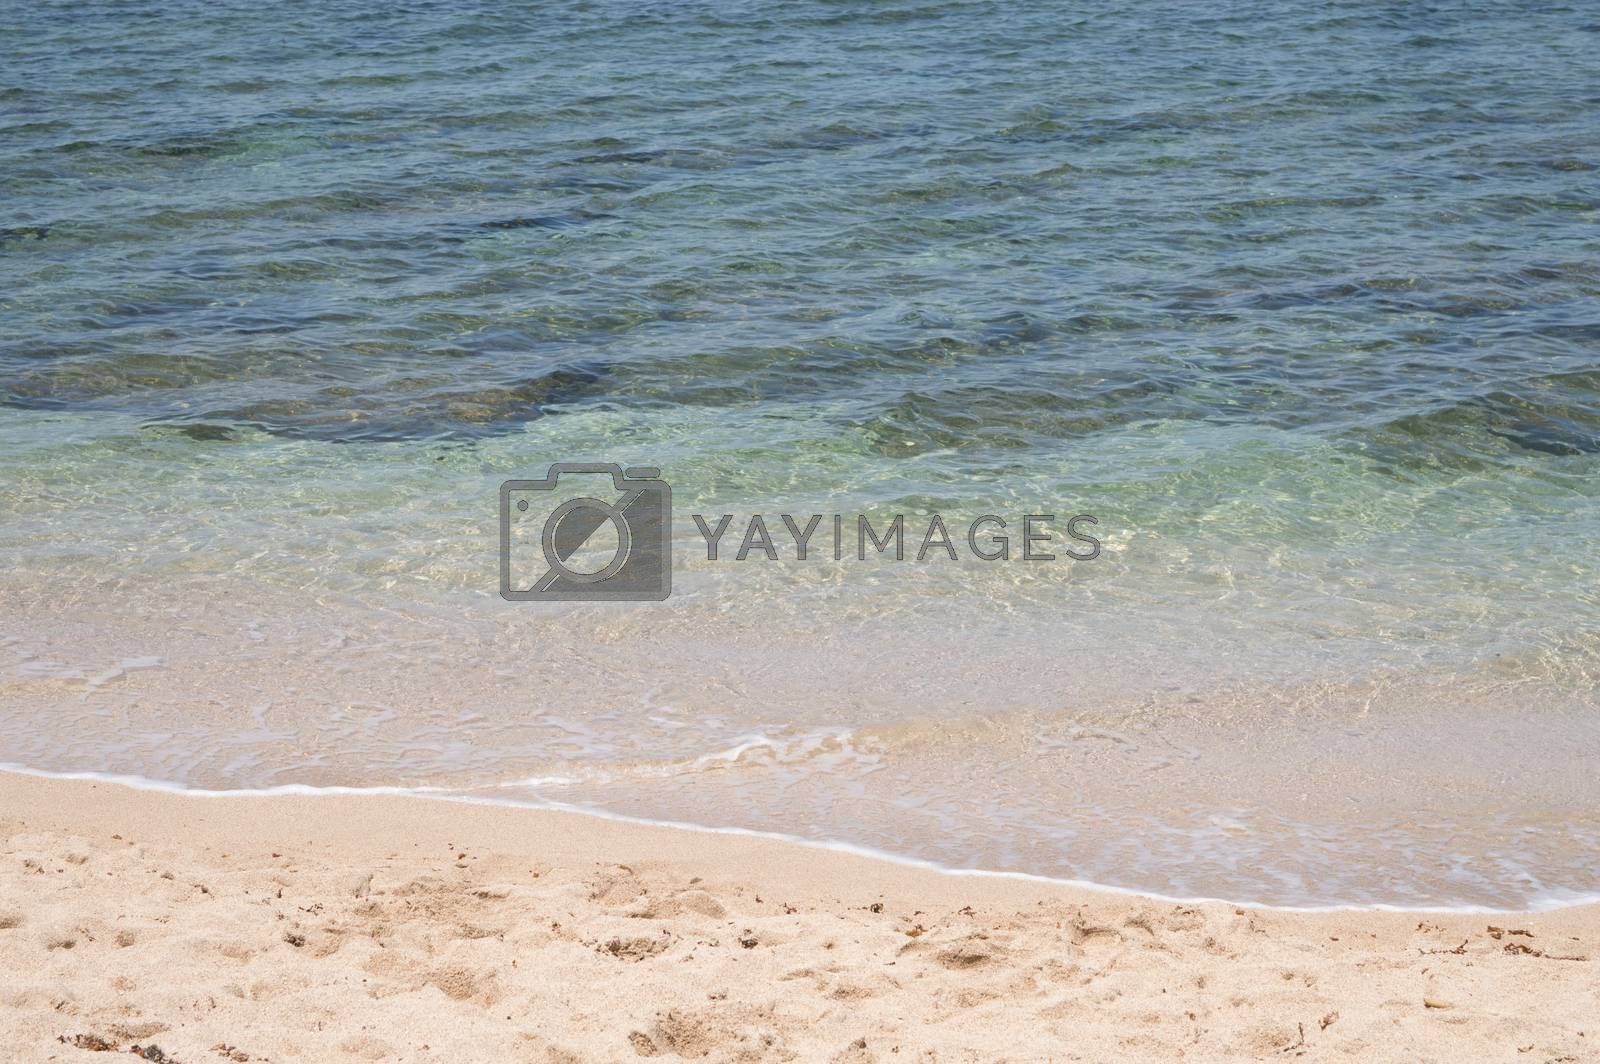 sea beach blue sky sand sun daylight relaxation landscape viewpoint for design